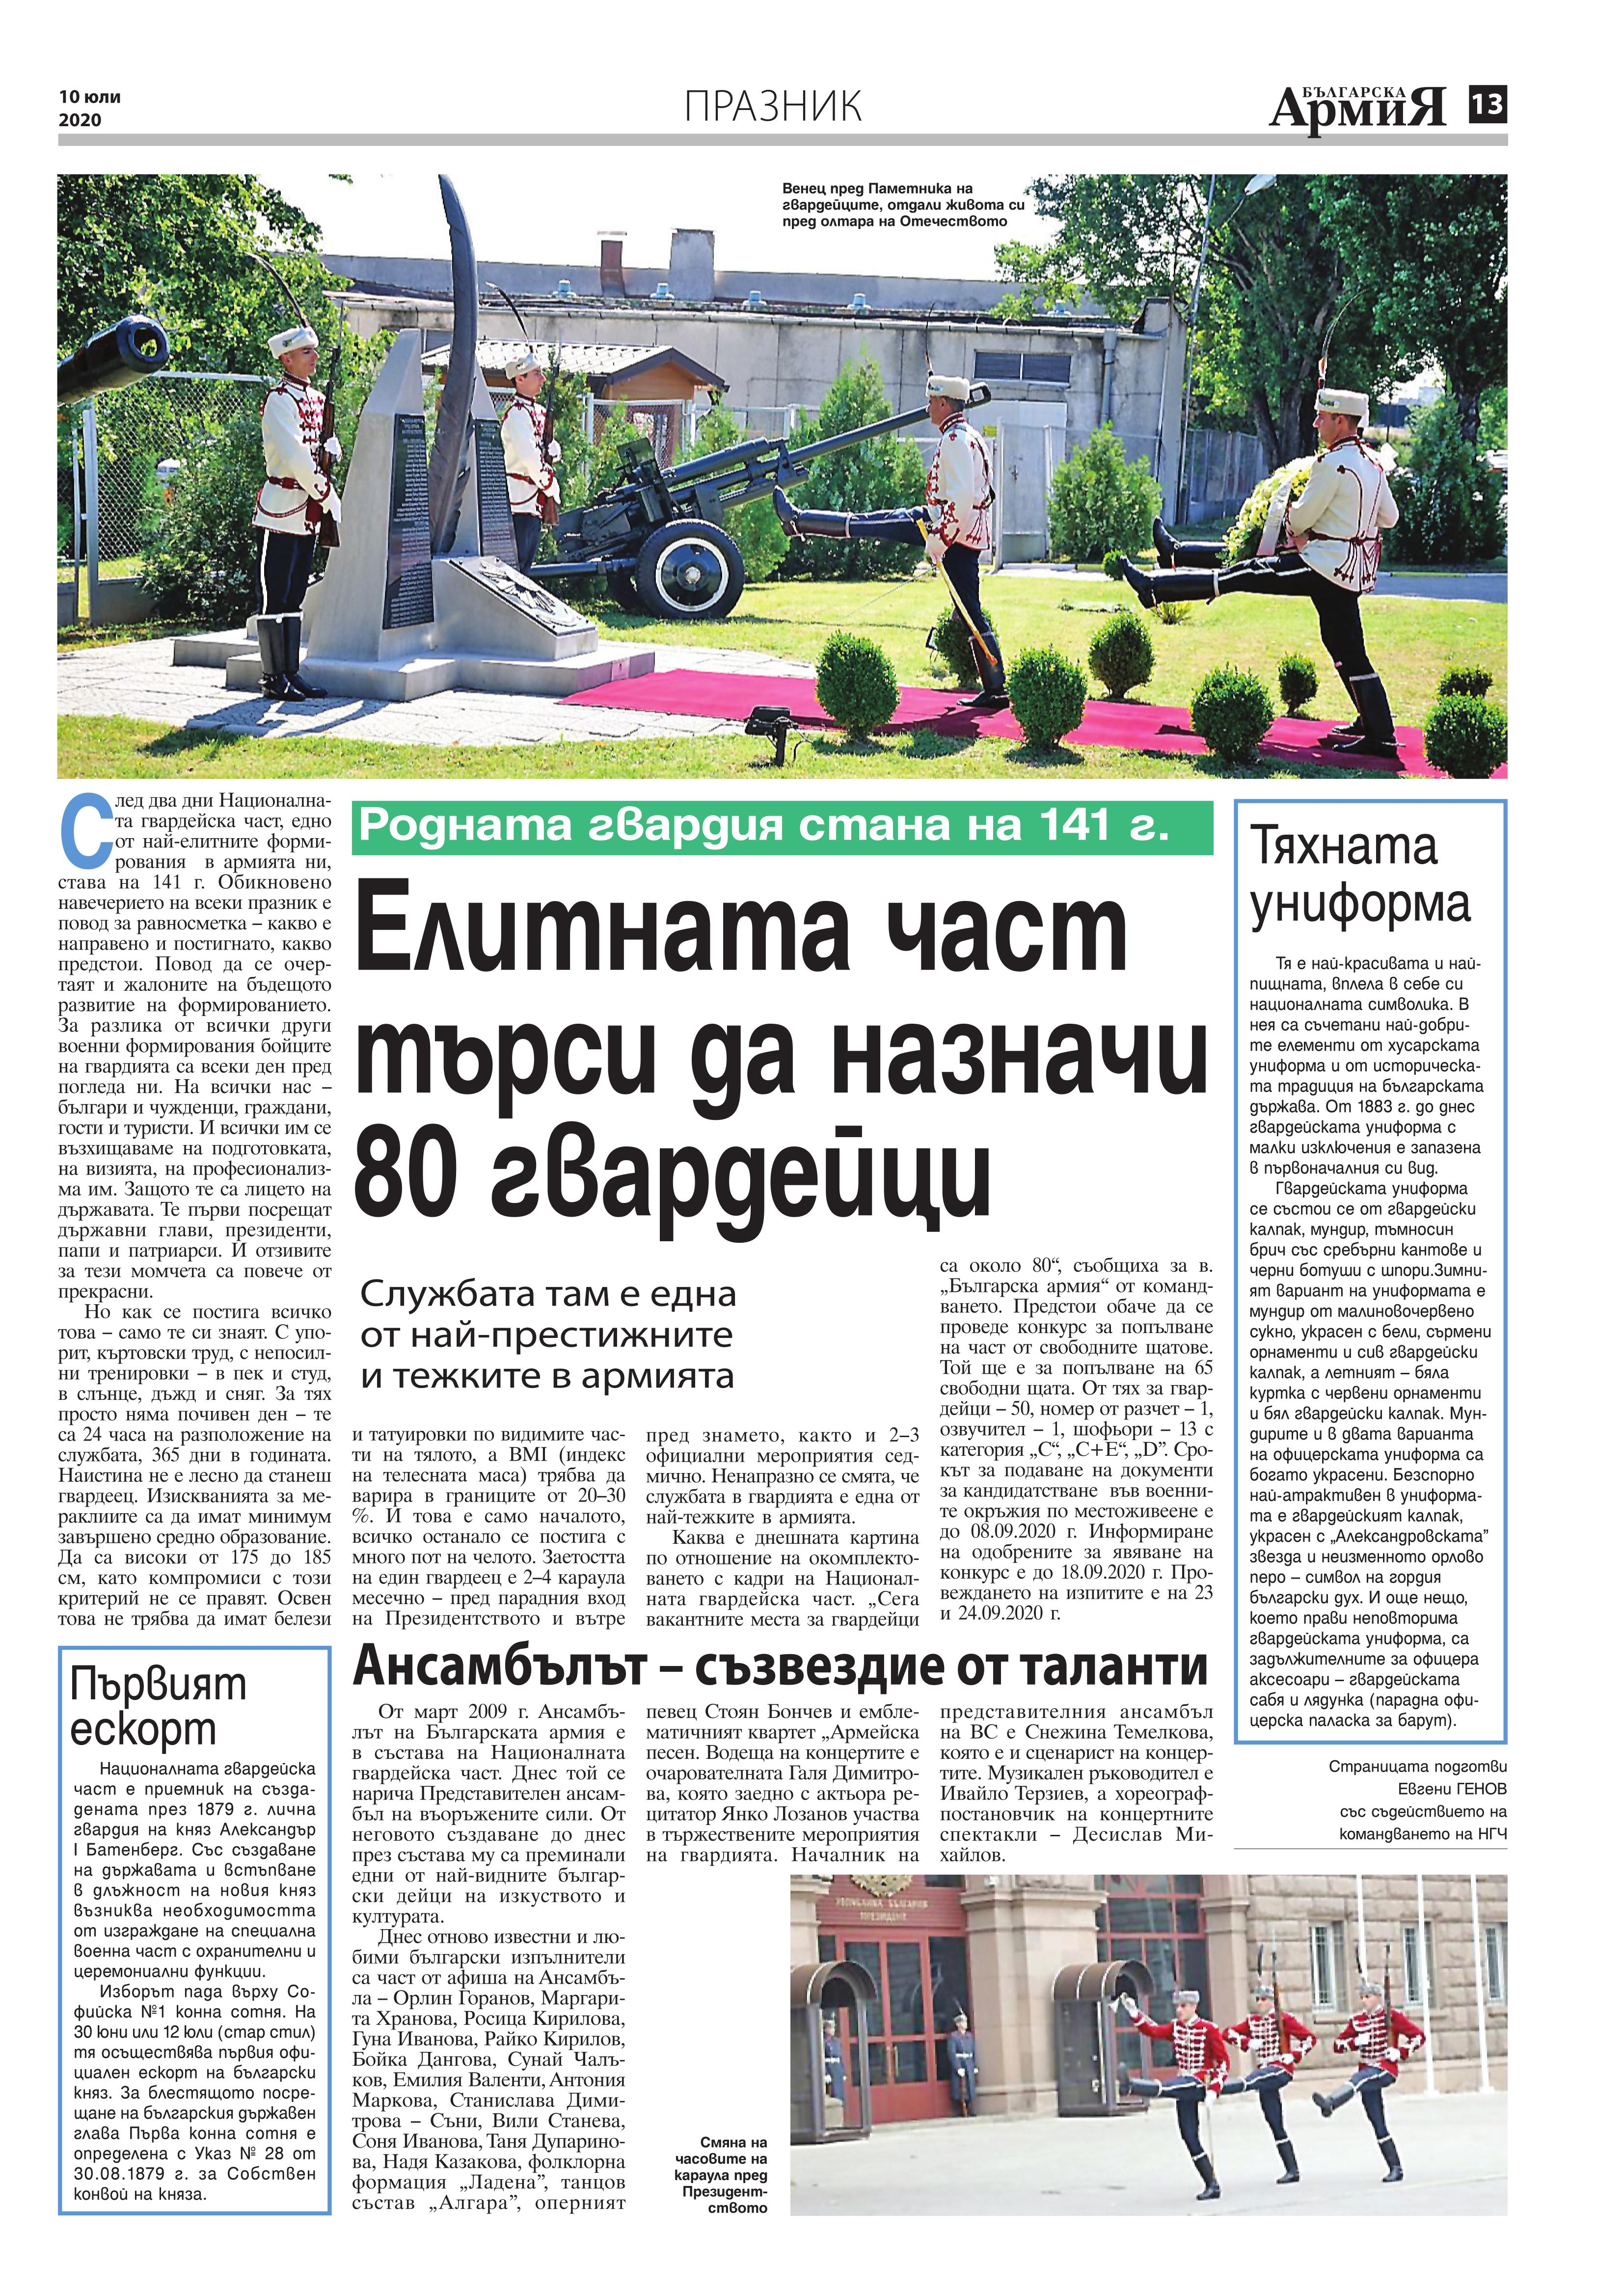 https://www.armymedia.bg/wp-content/uploads/2015/06/13.page1_-146.jpg